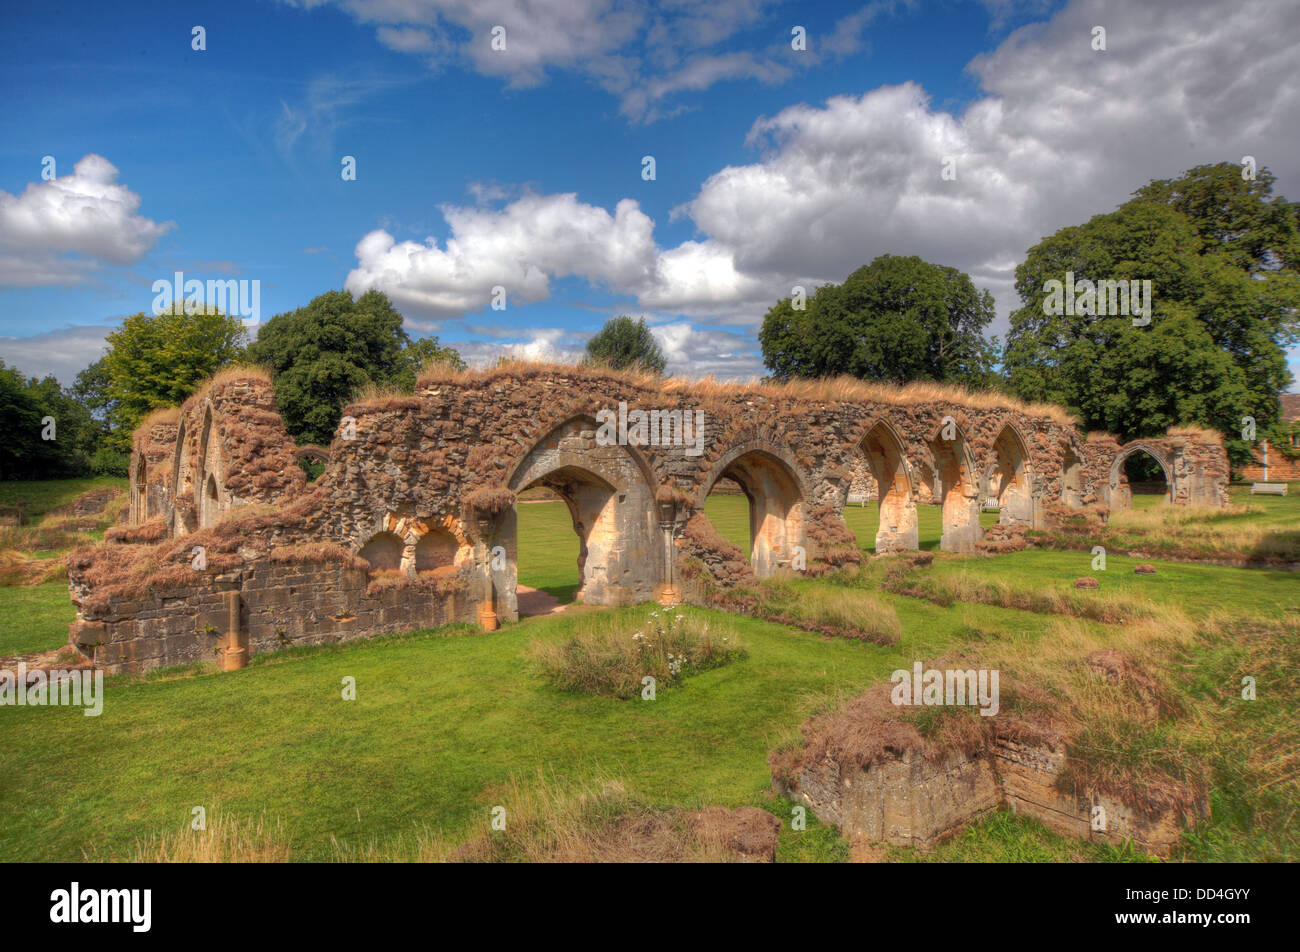 Hailes Cistercian Abbey, Cheltenham, Gloucestershire, England, GL54 5PB Stock Photo